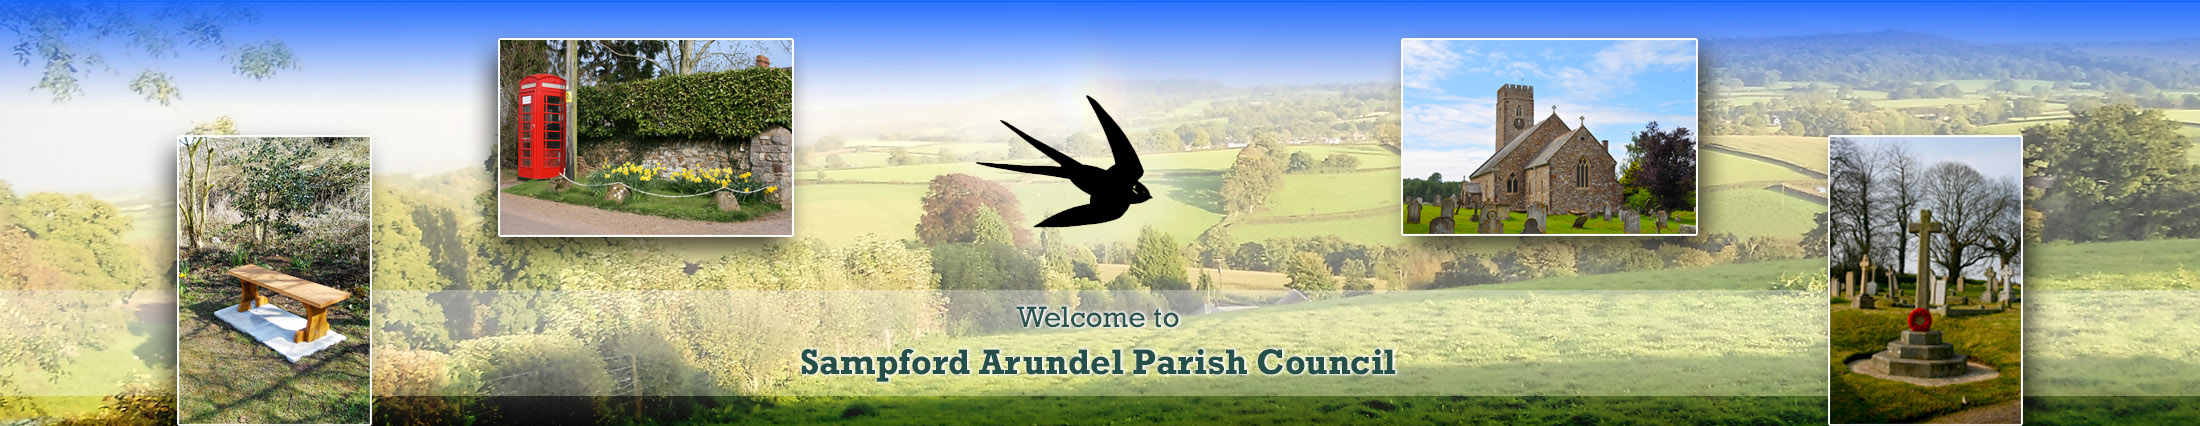 Header Image for Sampford Arundel Parish Council